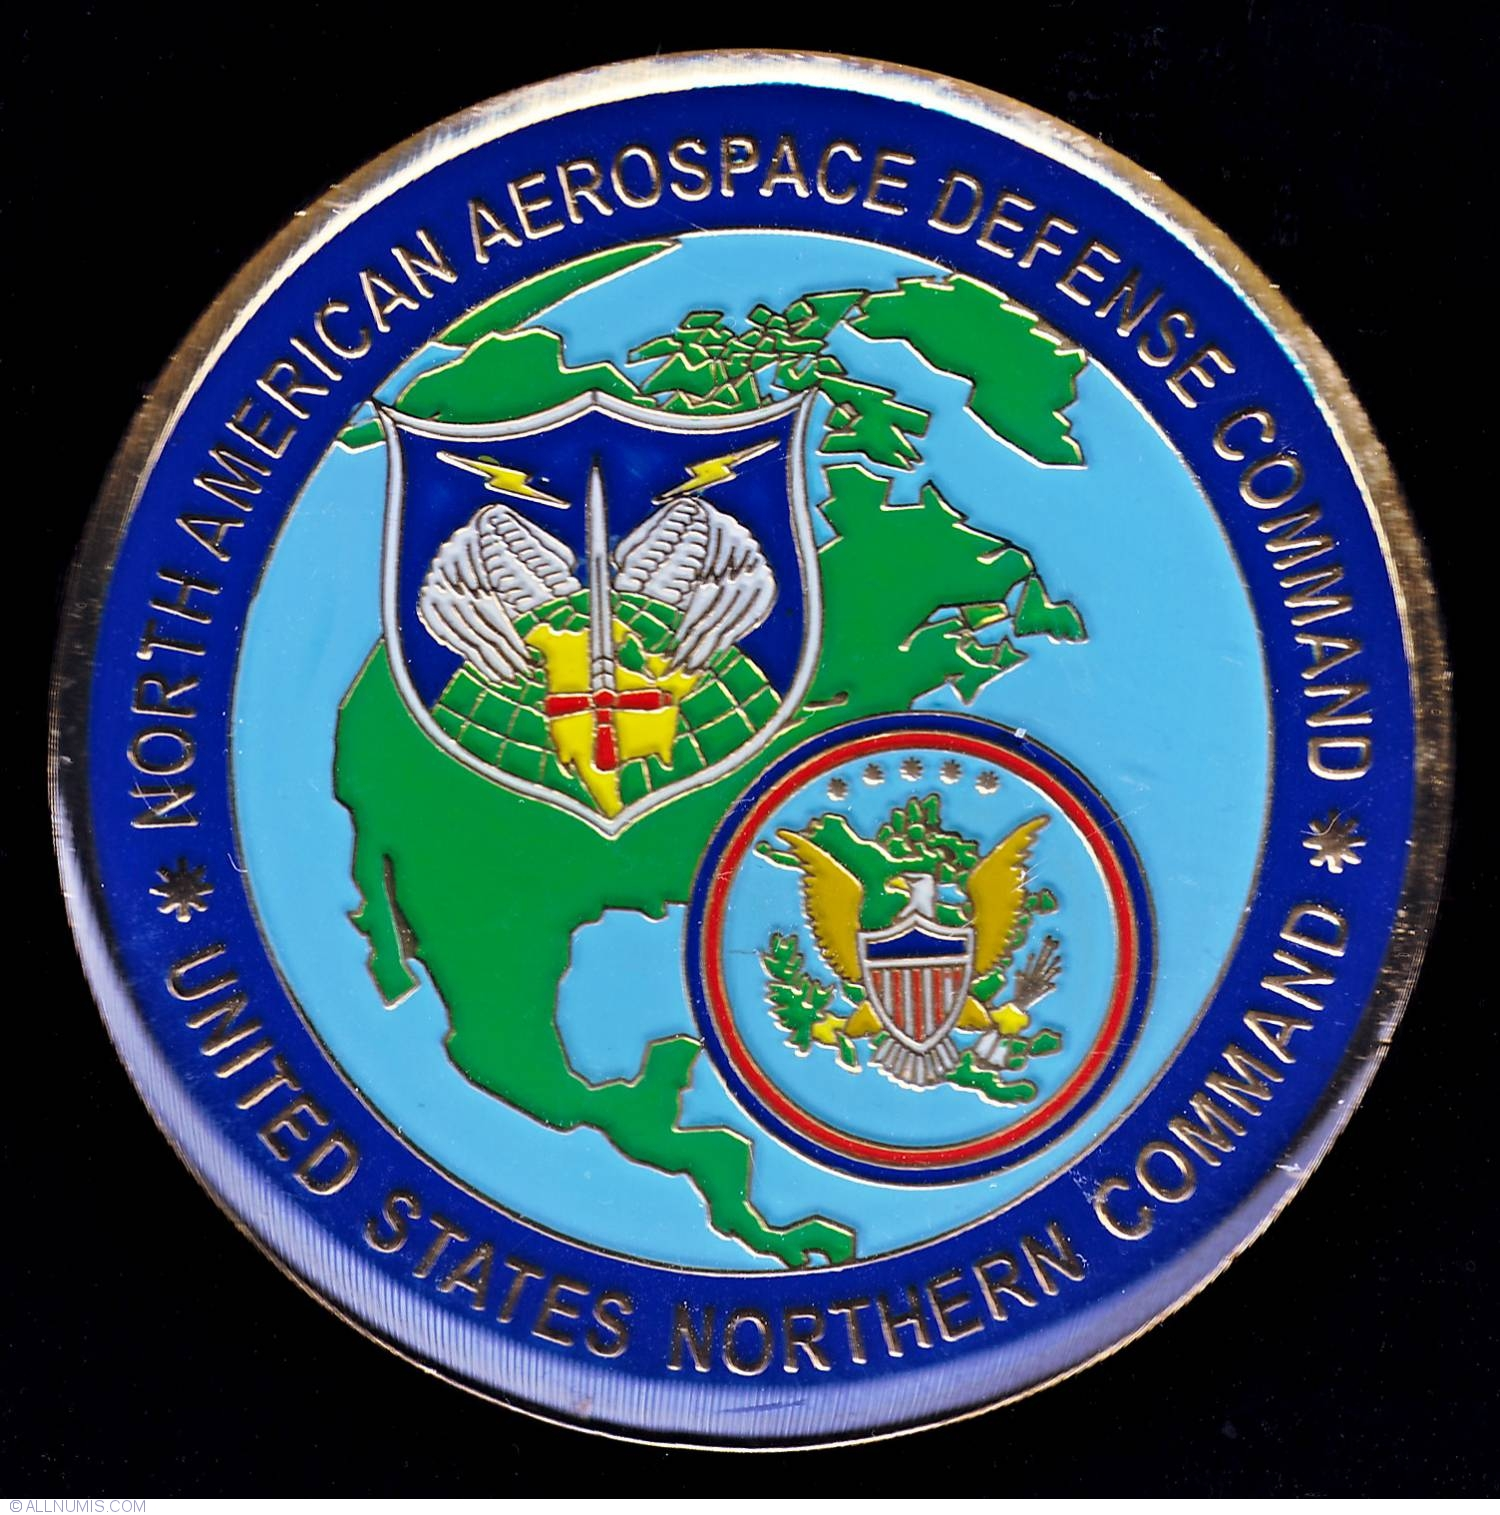 norad us northcom sergeant major military challenge coin